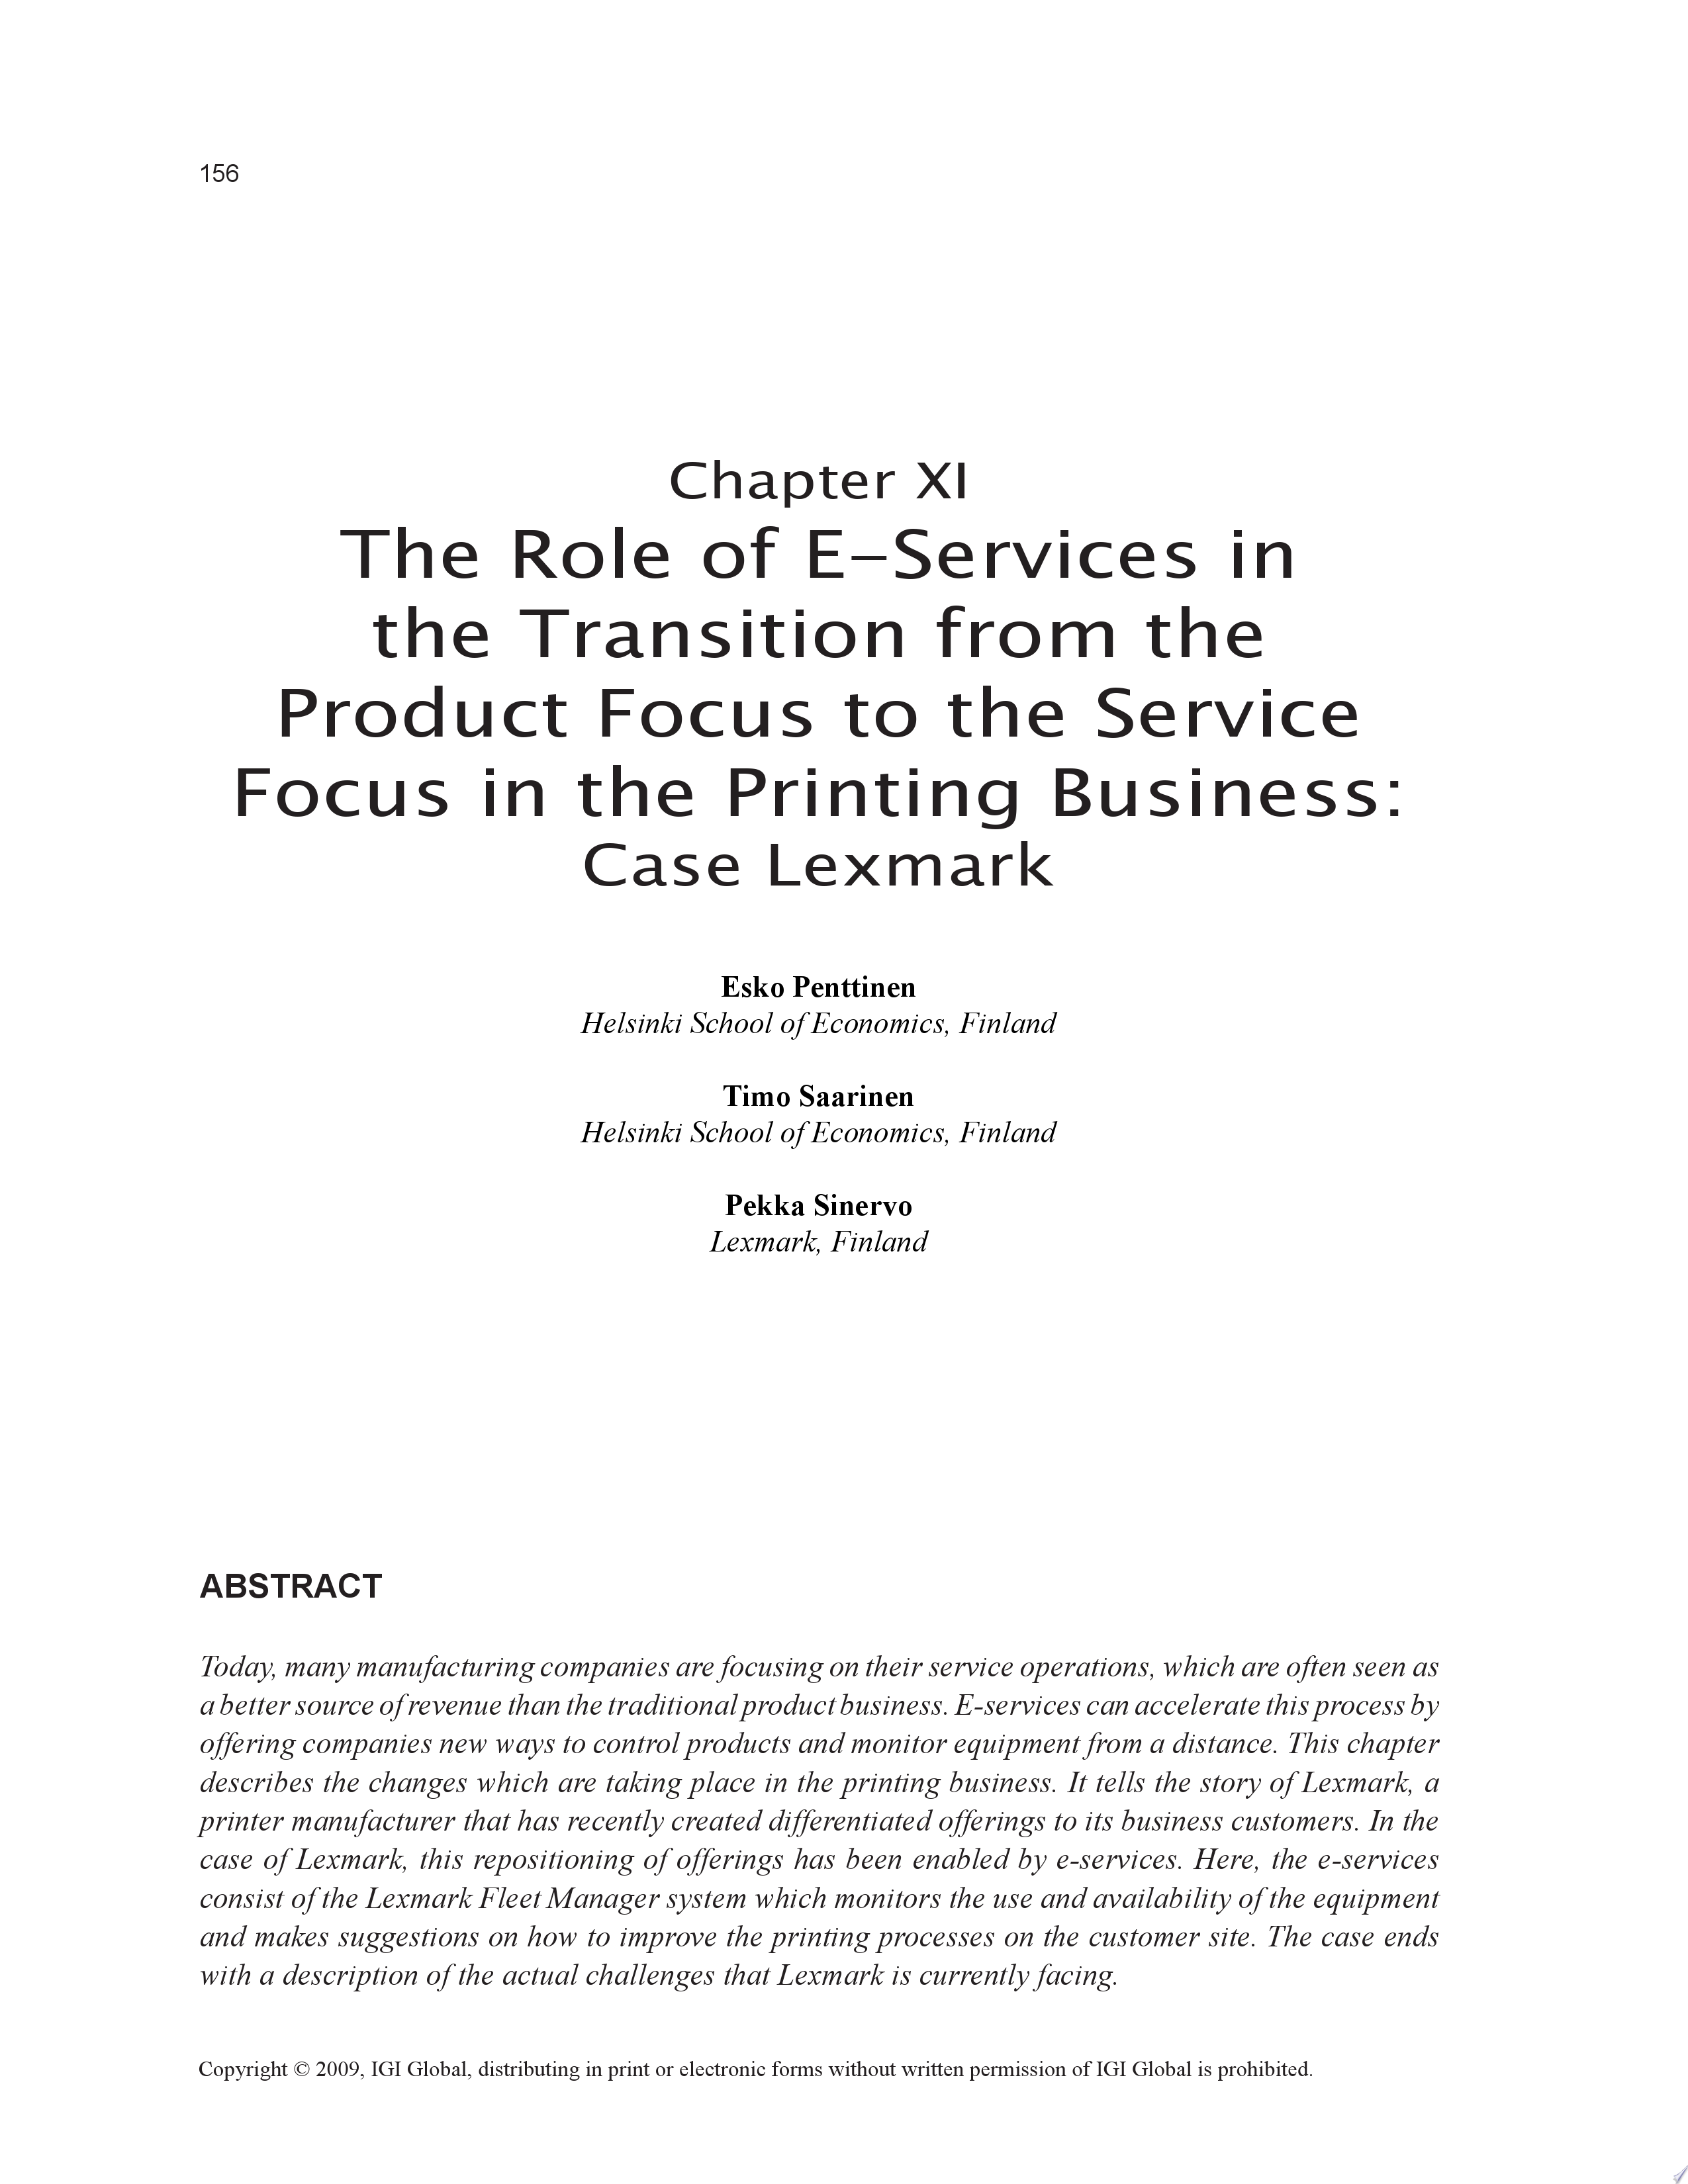 The Role of E Services in the Transition from the Product Focus to the Service Focus in the Printing Business  Case Lexmark